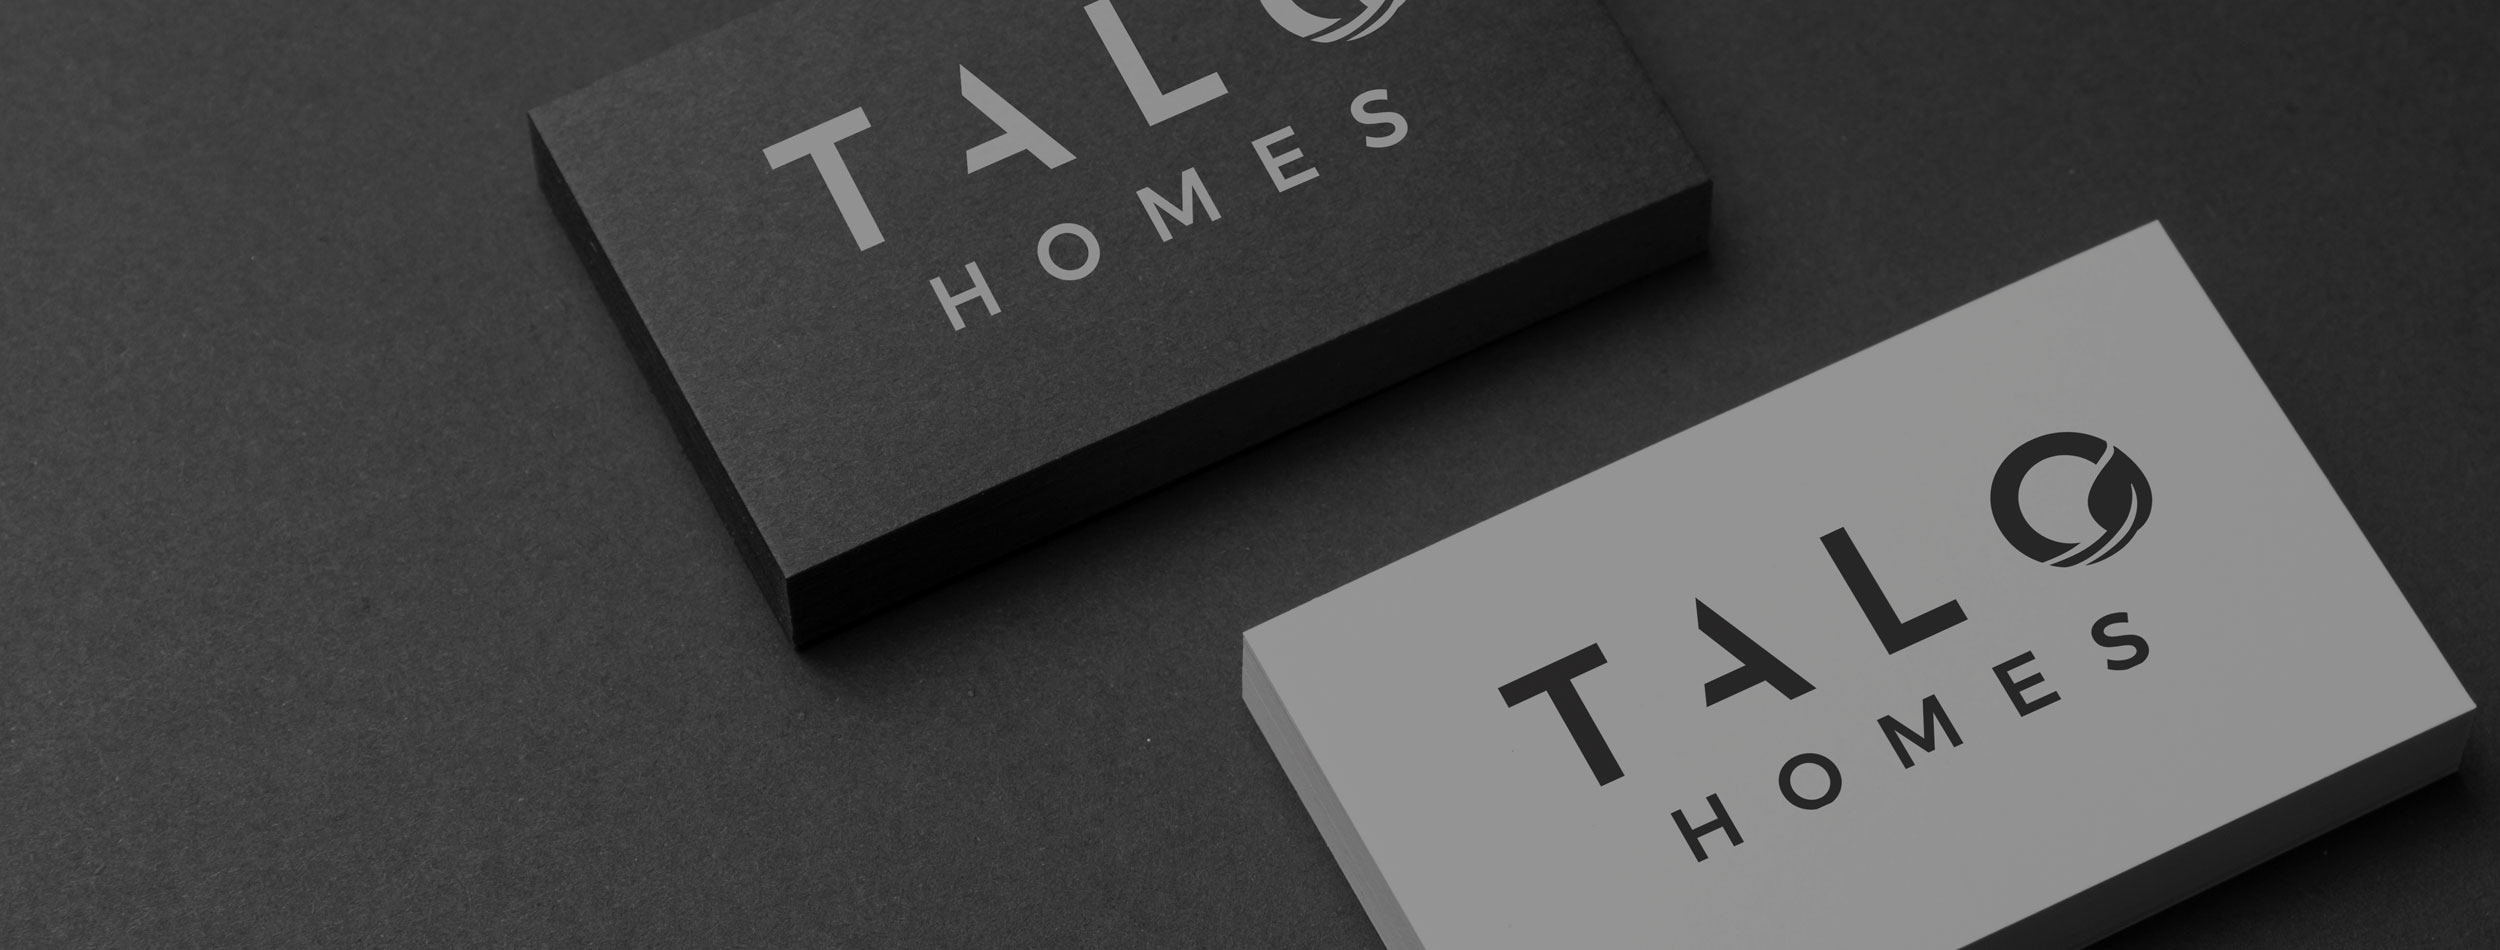 TALO Homes Branding Development